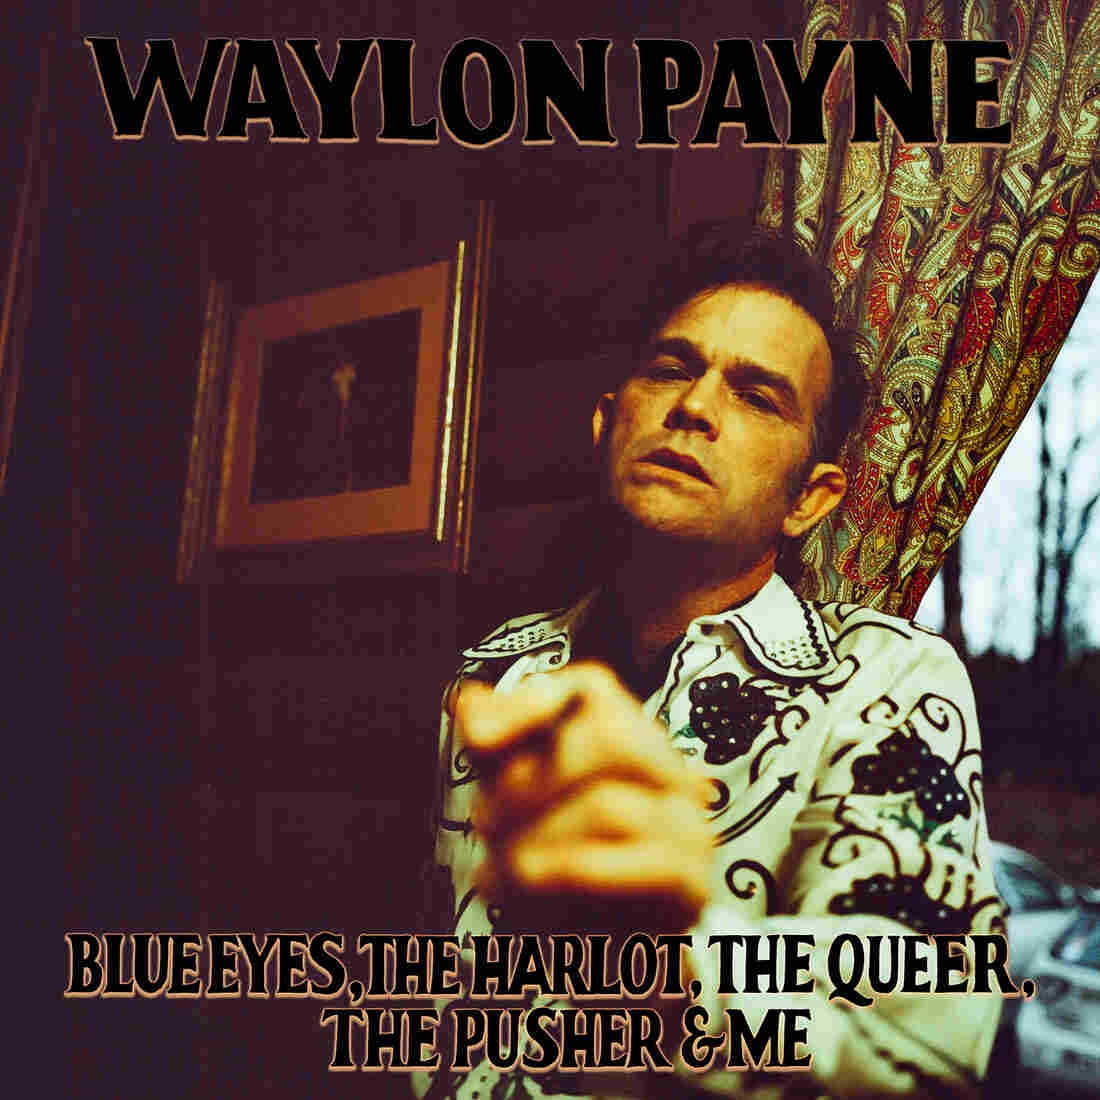 Waylon Payne, Blue Eyes, The Harlot, The Queer, The Pusher & Me